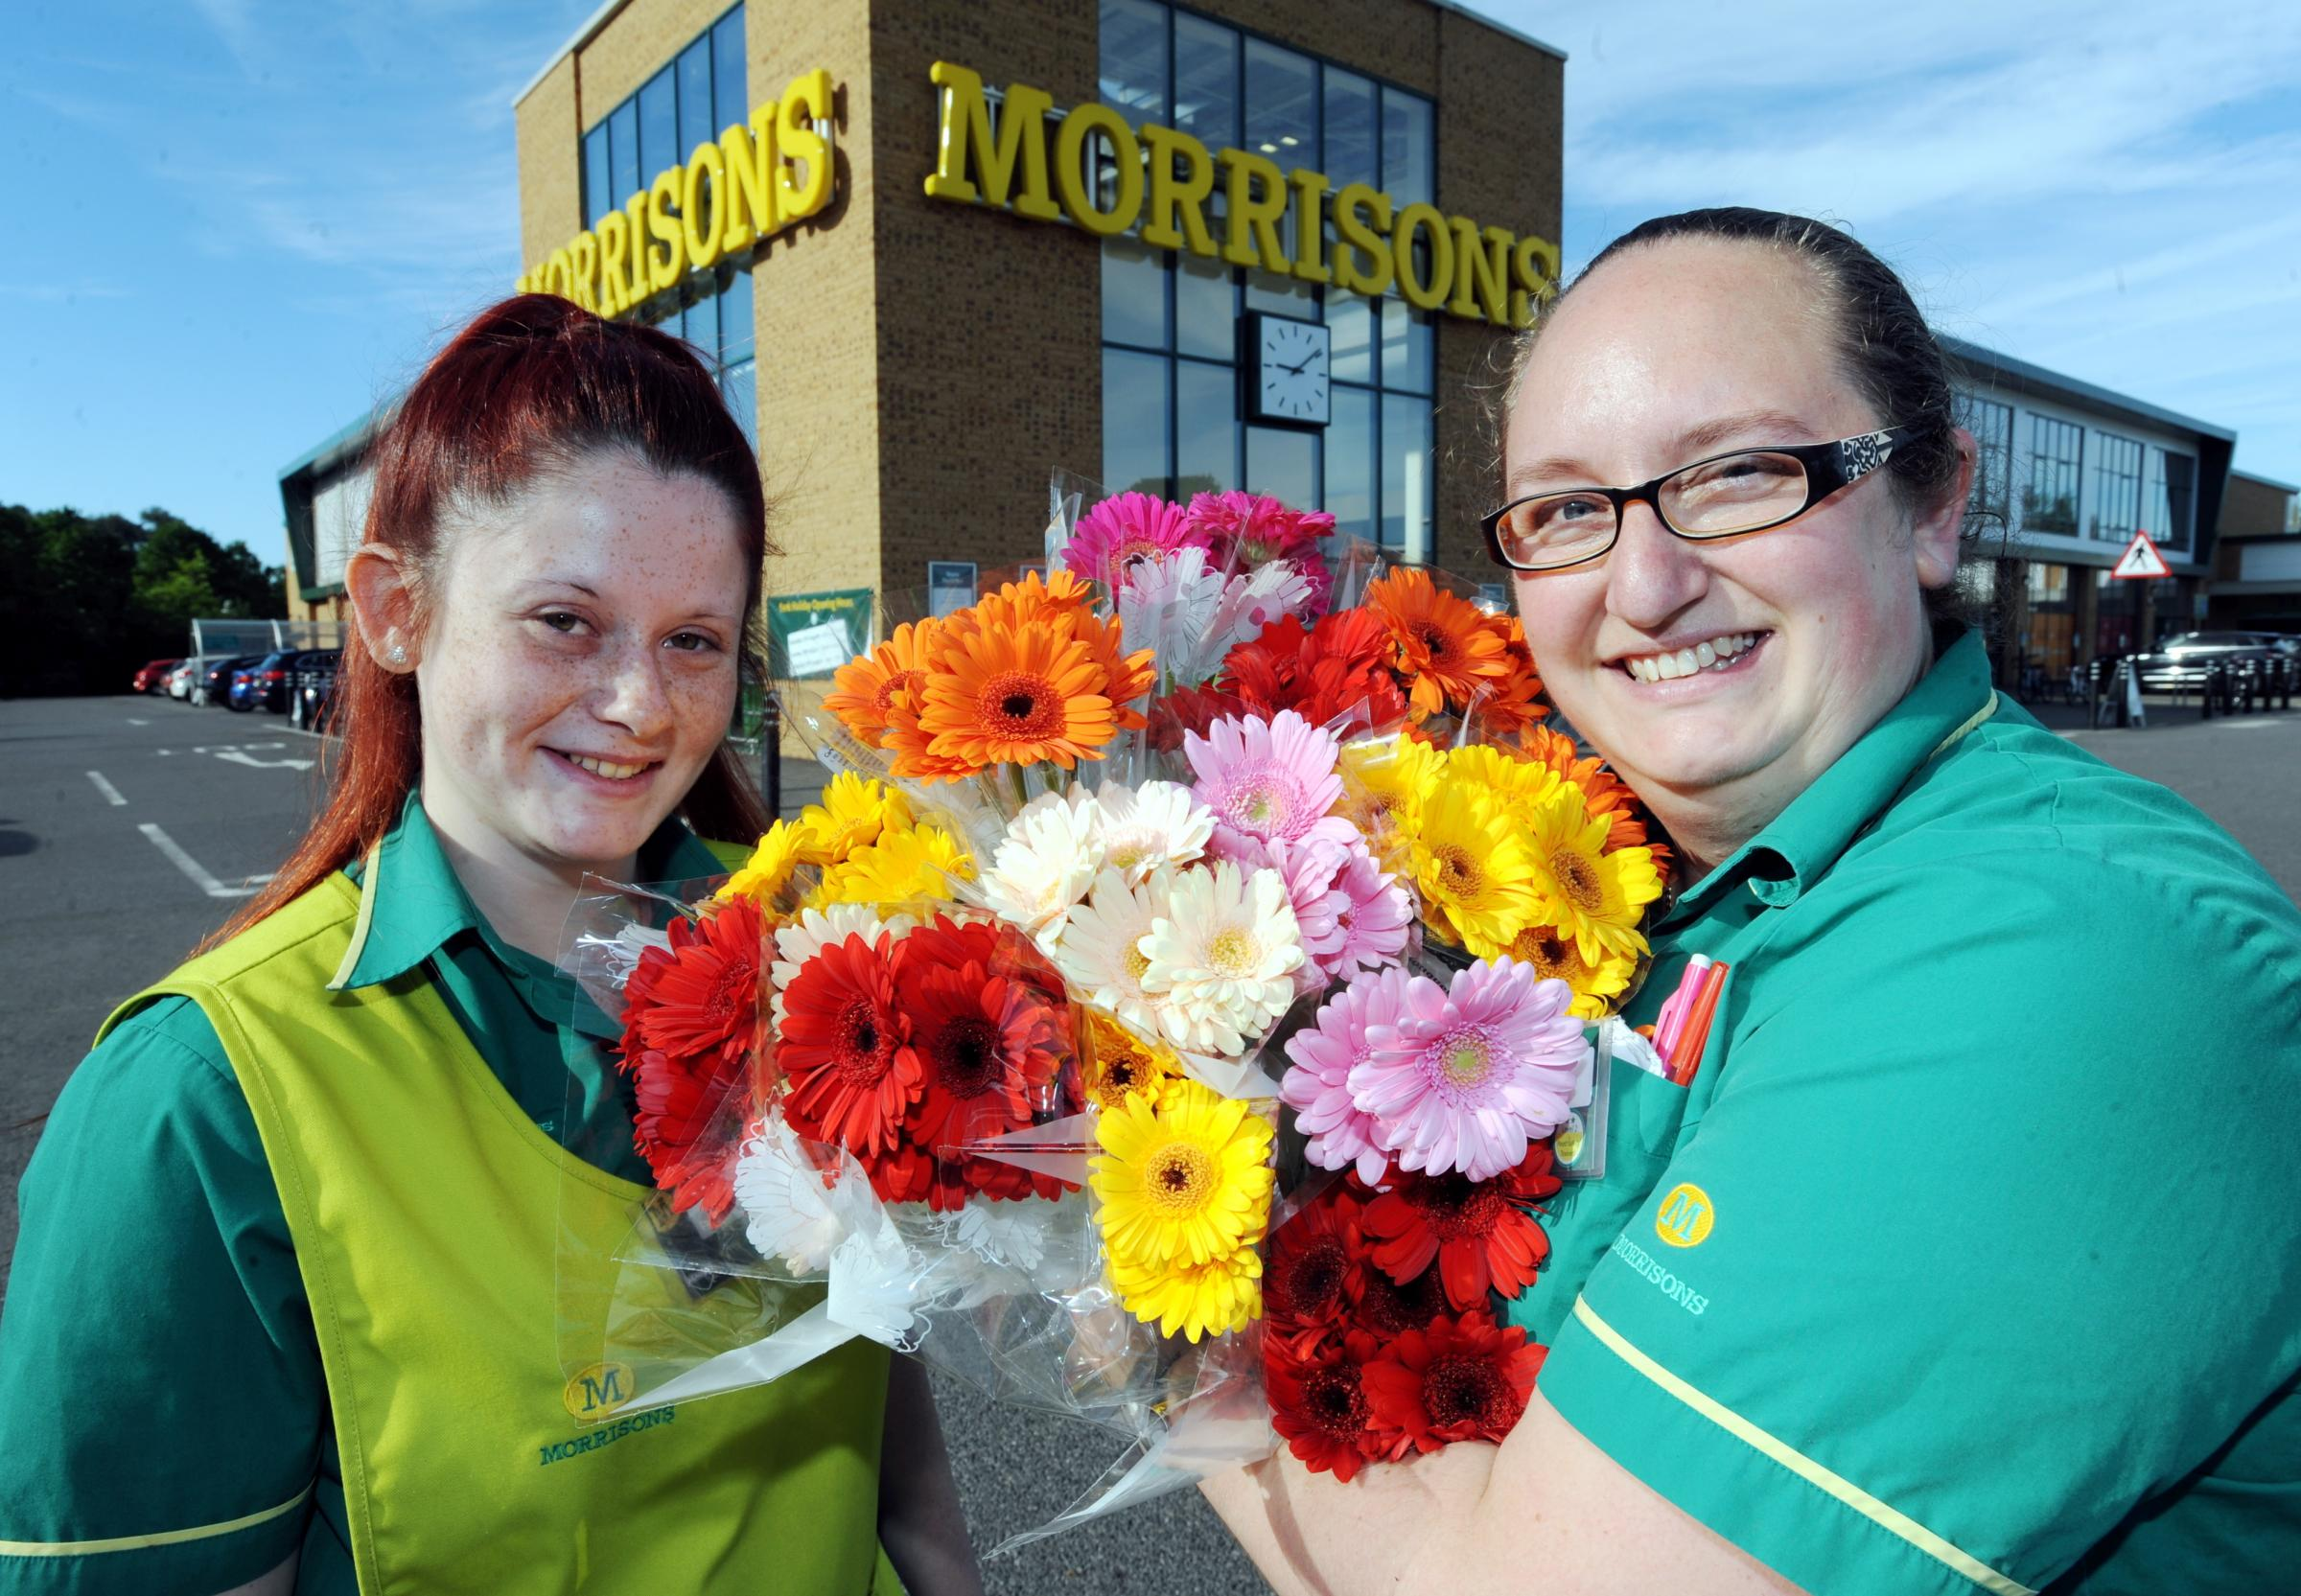 Morrisons hoping to make residents day with colourful floral gifts morrisons hoping to make residents day with colourful floral gifts swindon advertiser izmirmasajfo